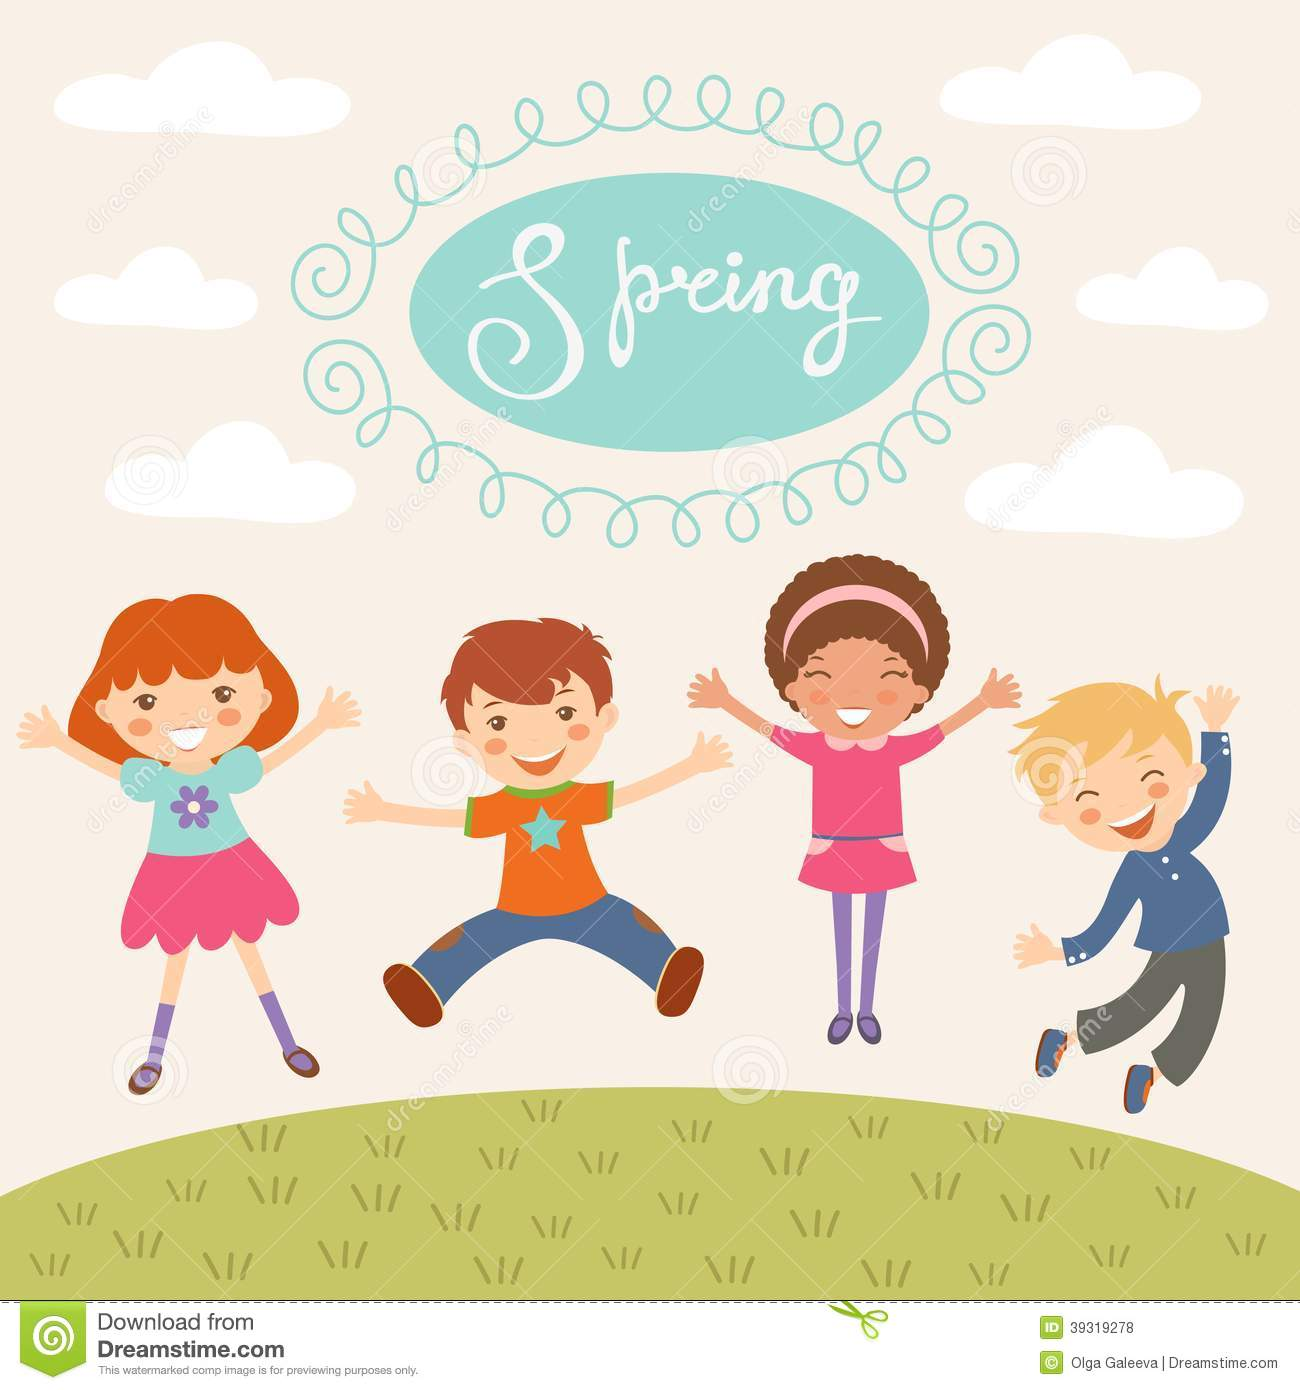 jumping spring kids stock vector - Spring Images For Kids